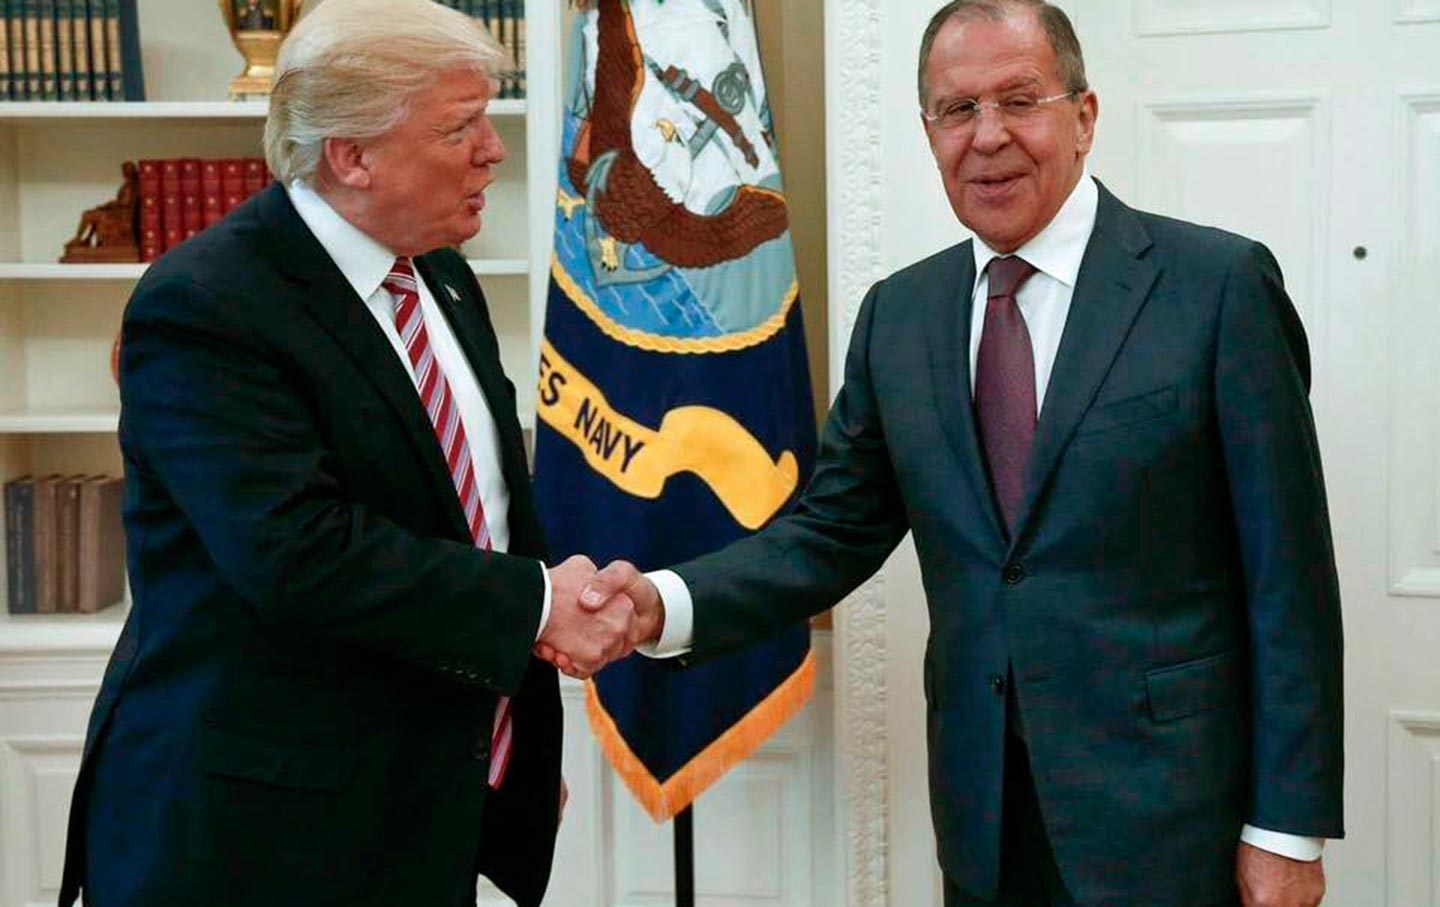 Trump and Lavrov